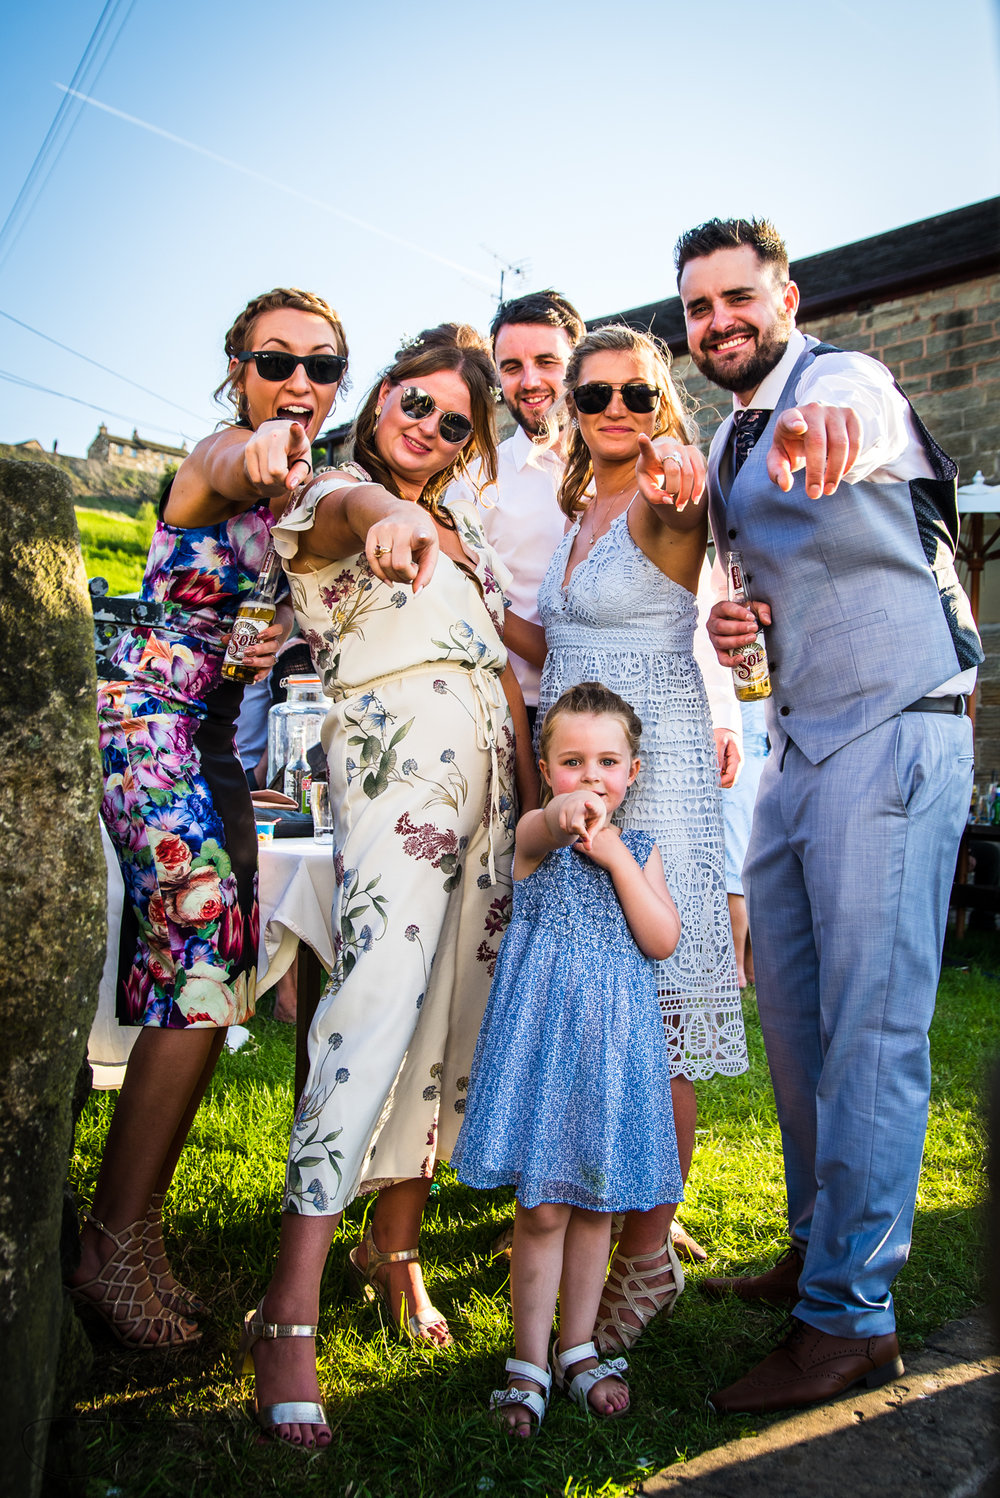 Six wedding guests pose together for a funny photo together, they are dressed in really bright summer wedding clothes